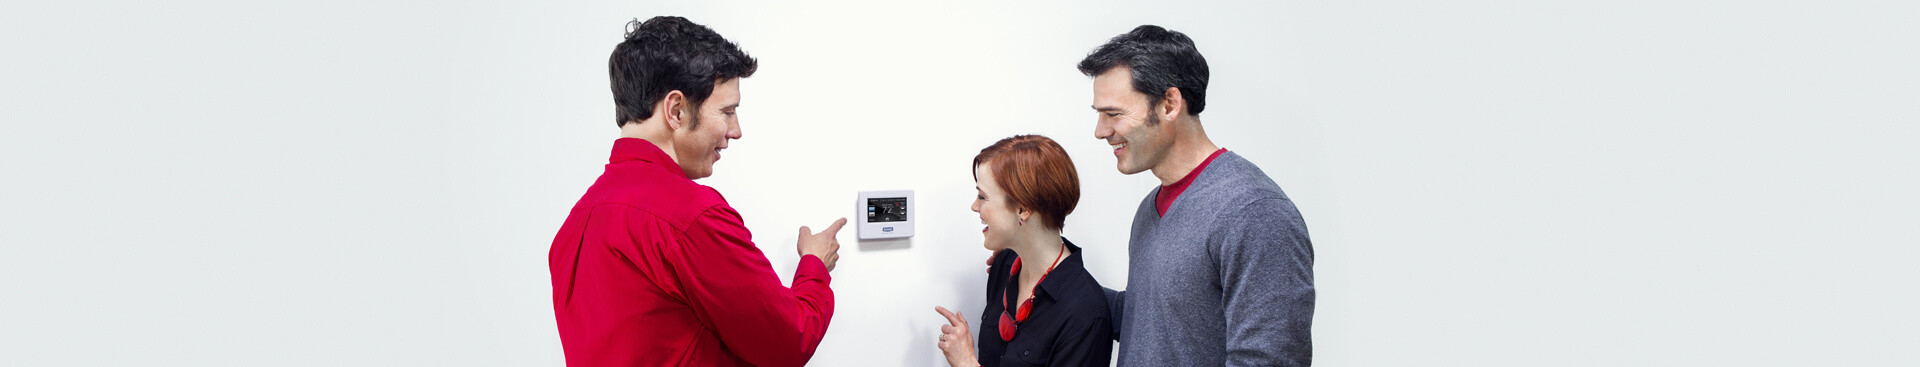 Technician and homeowners discussing a home automation system